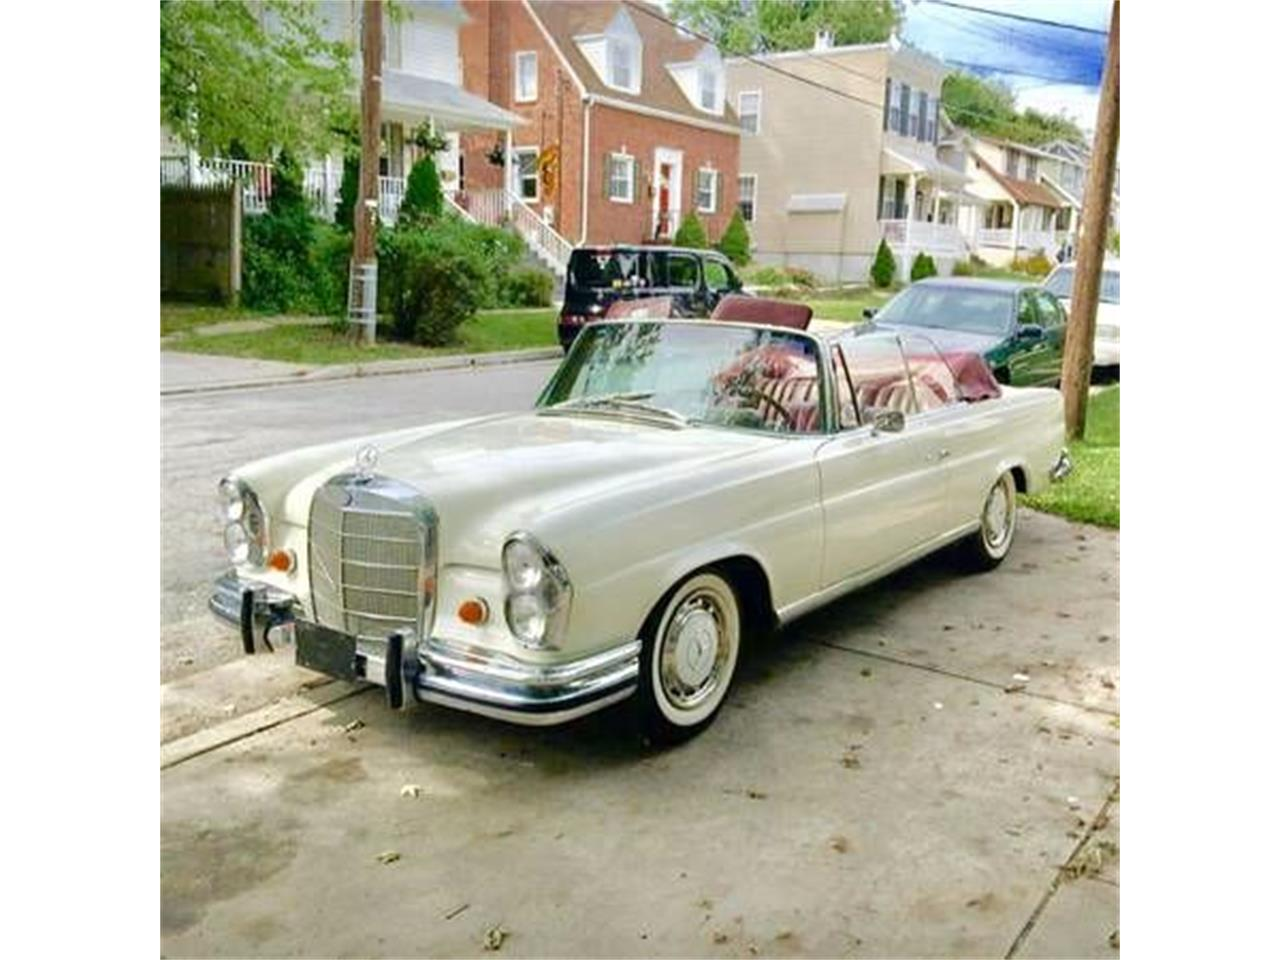 Large Picture of '66 Mercedes-Benz 250 - $78,495.00 Offered by Classic Car Deals - MOB0